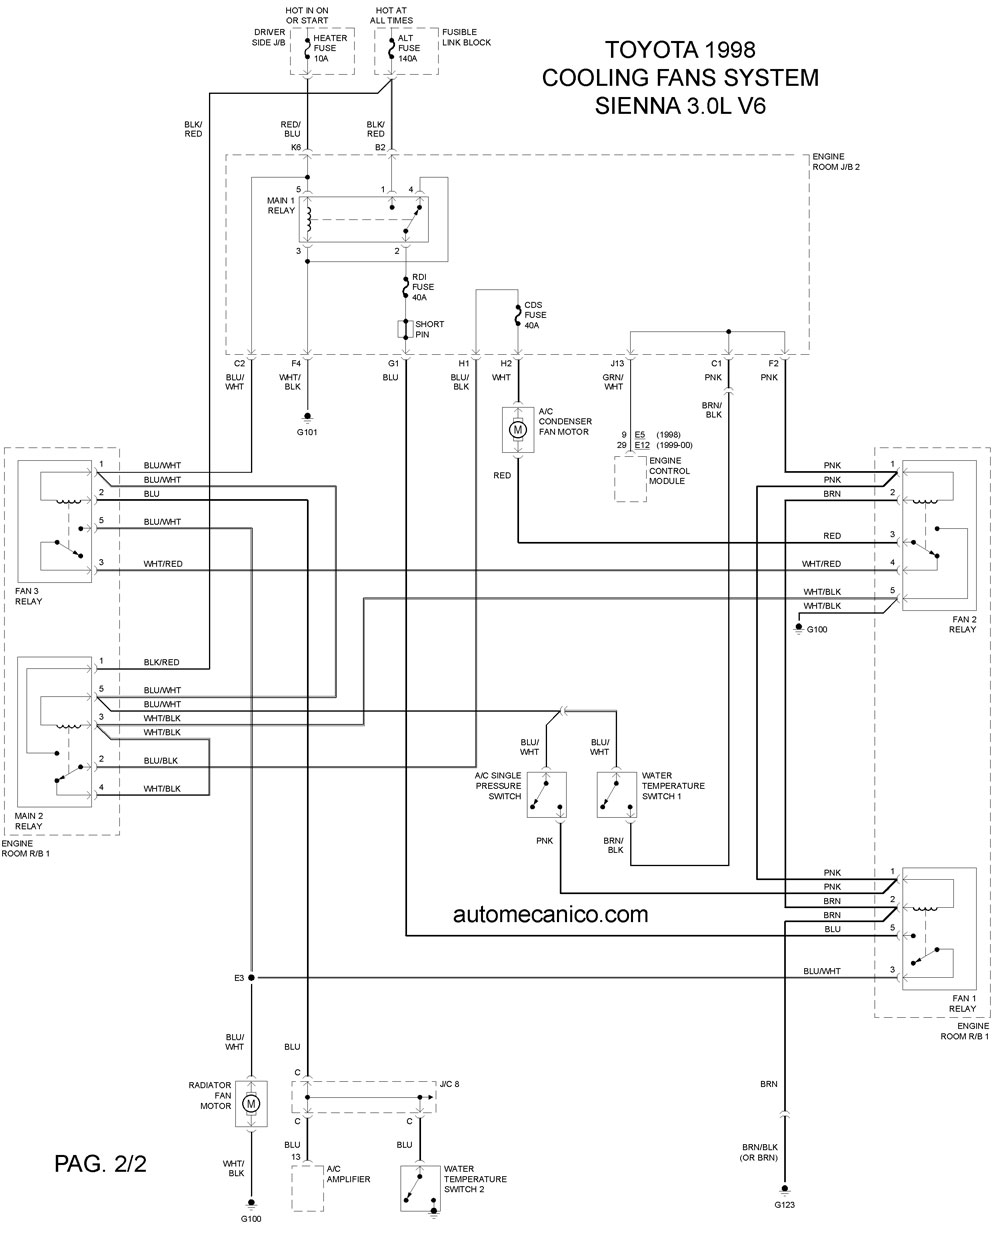 Toyota Cooling Fans System Diagramas Ventiladores